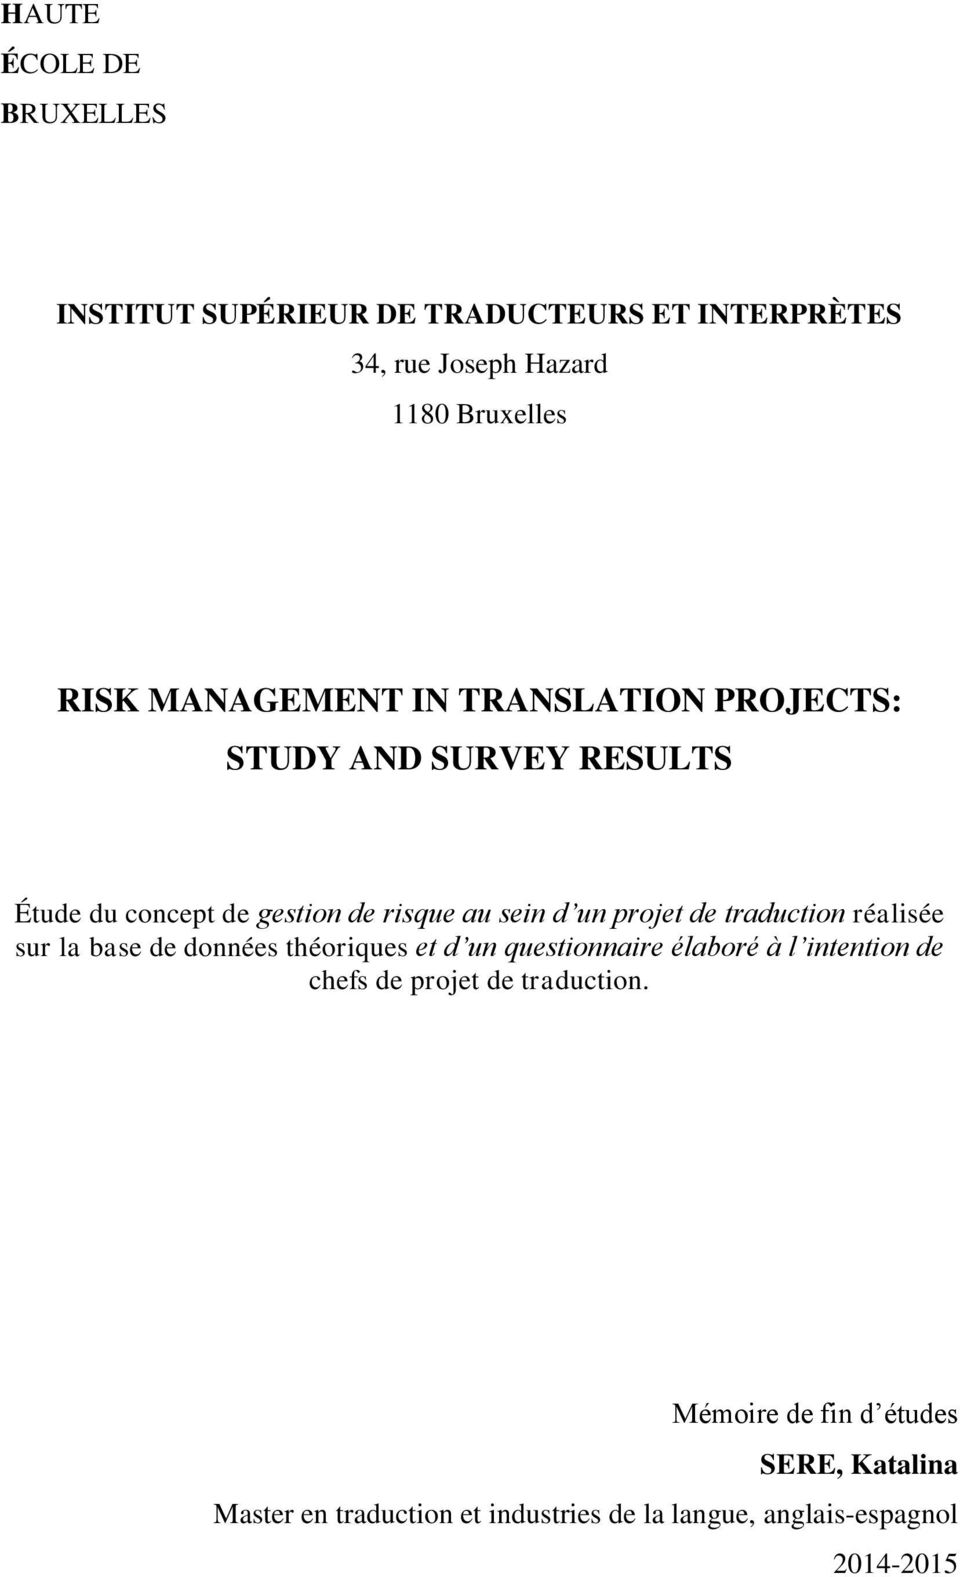 Risk Management In Translation Projects Study And Survey